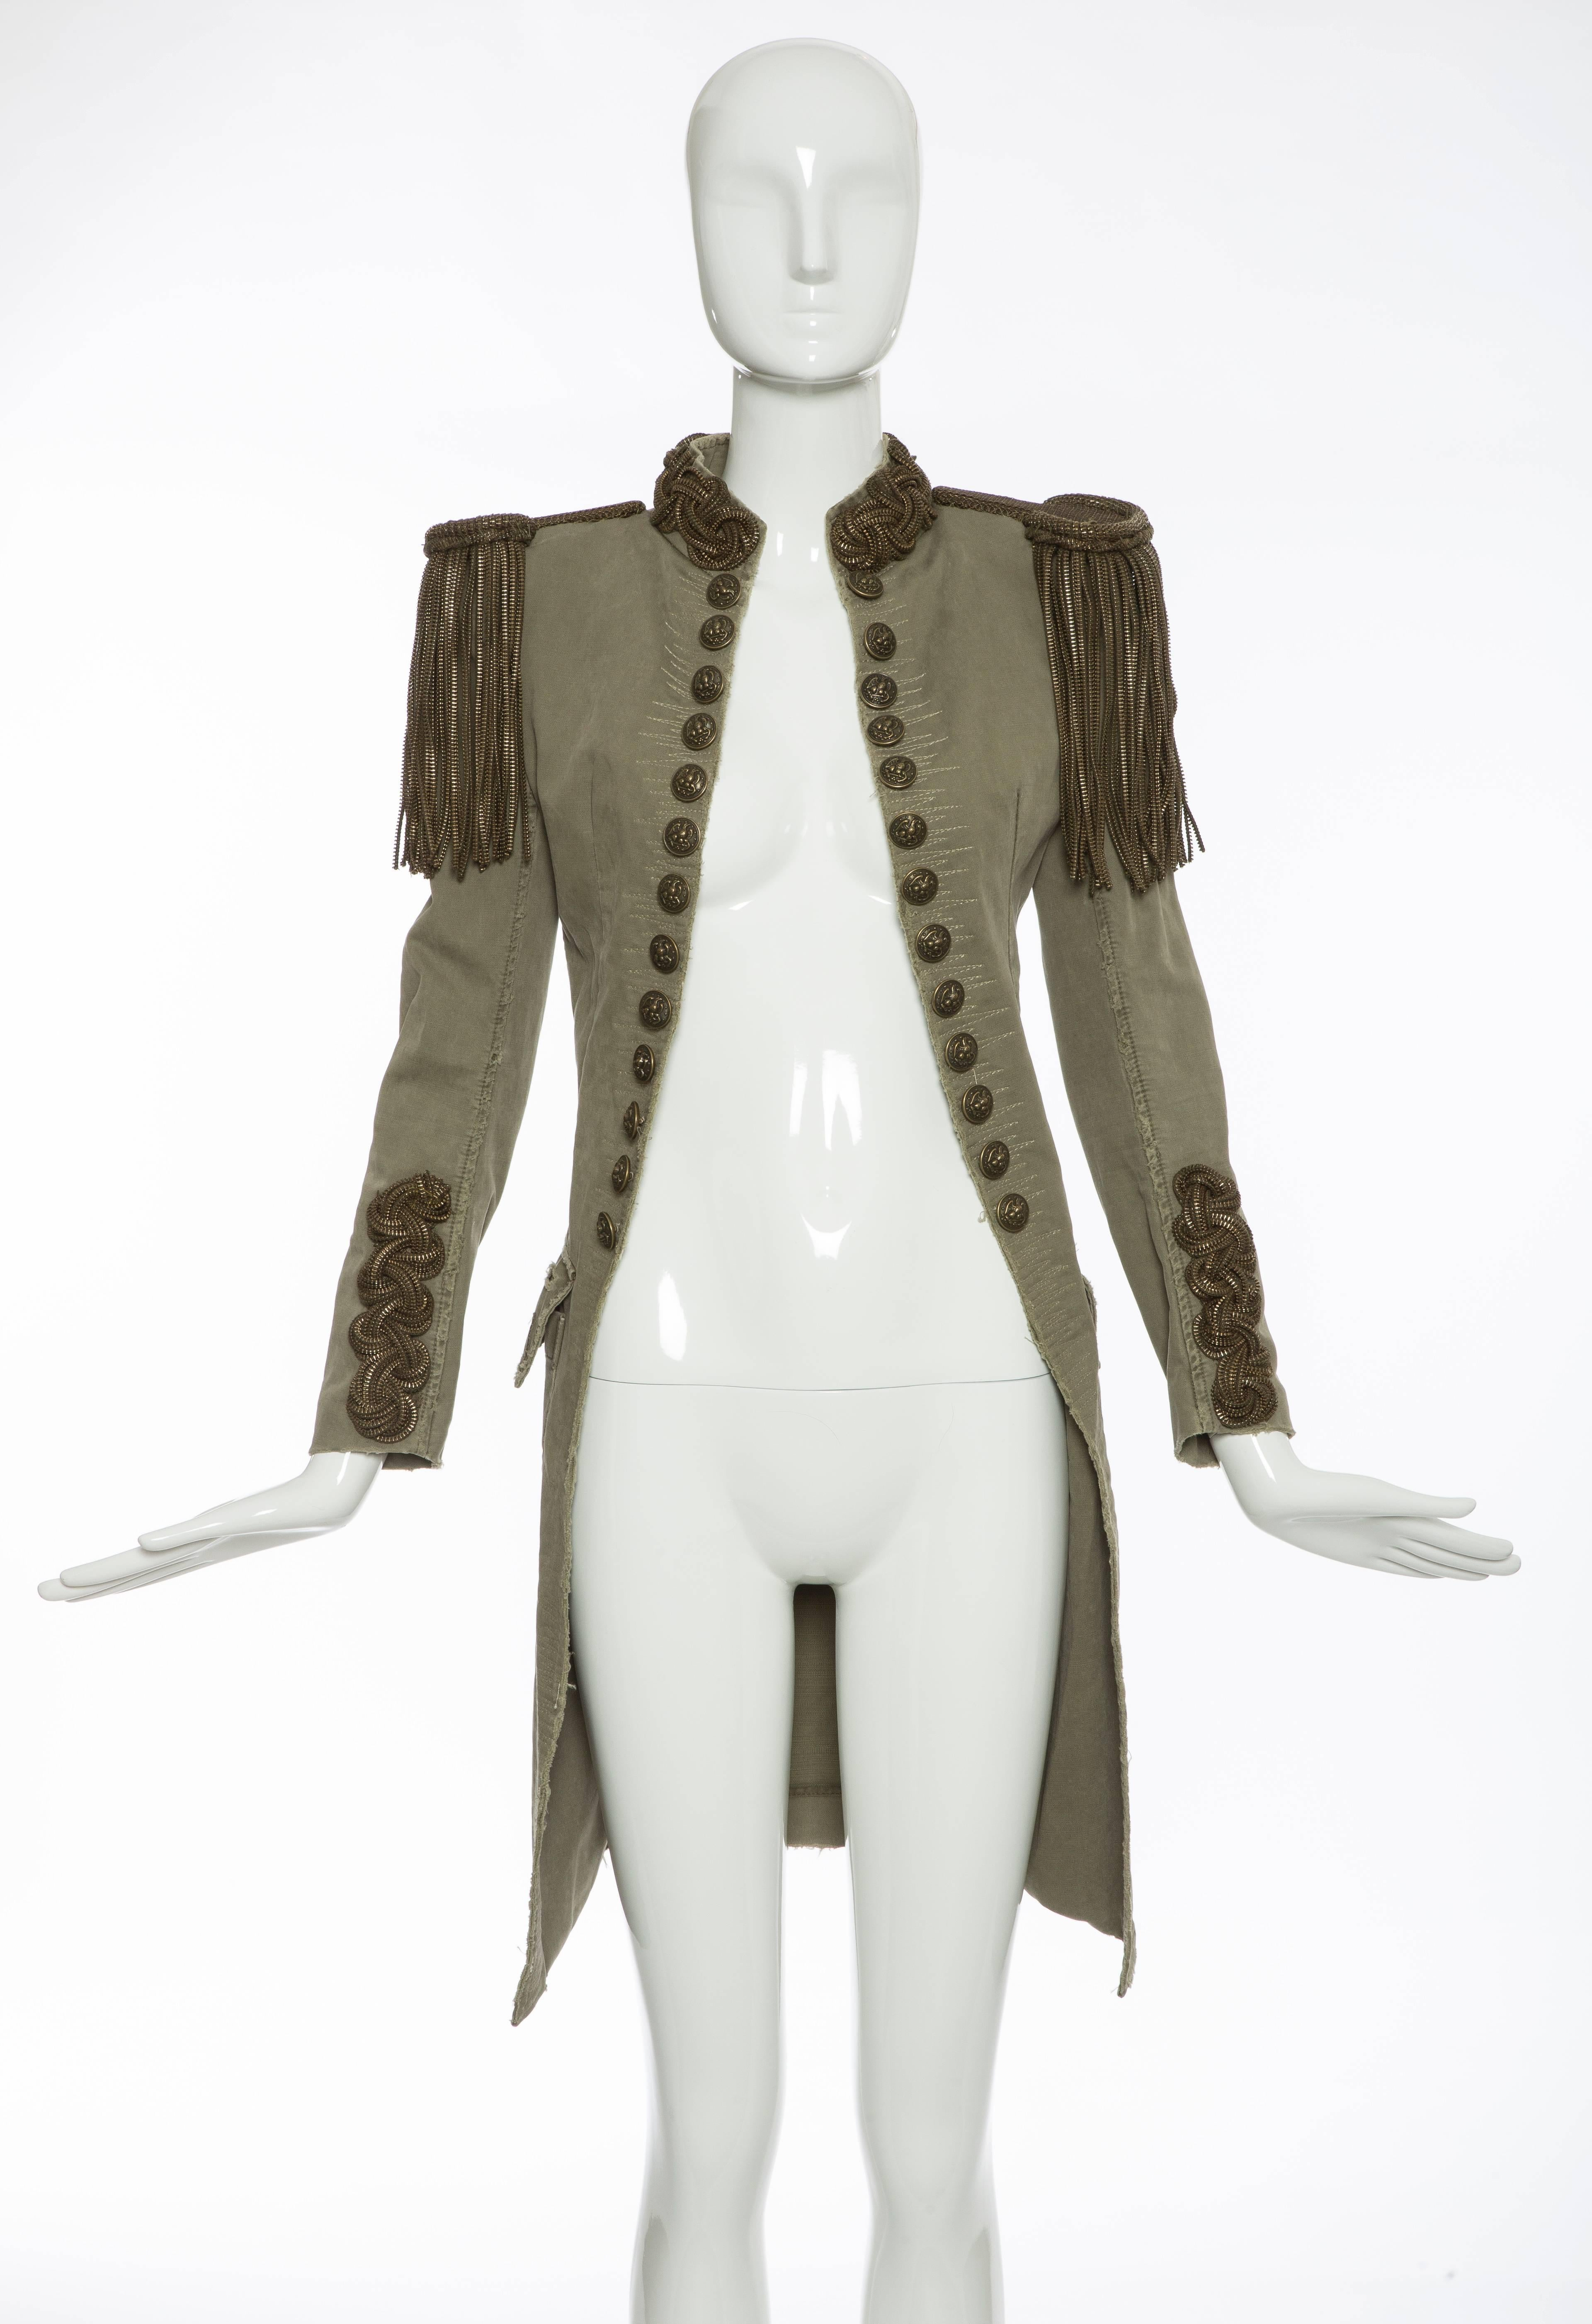 29c4a1d6 Balmain By Christophe Decarnin Runway Military Jacket, Spring 2010 For Sale  at 1stdibs